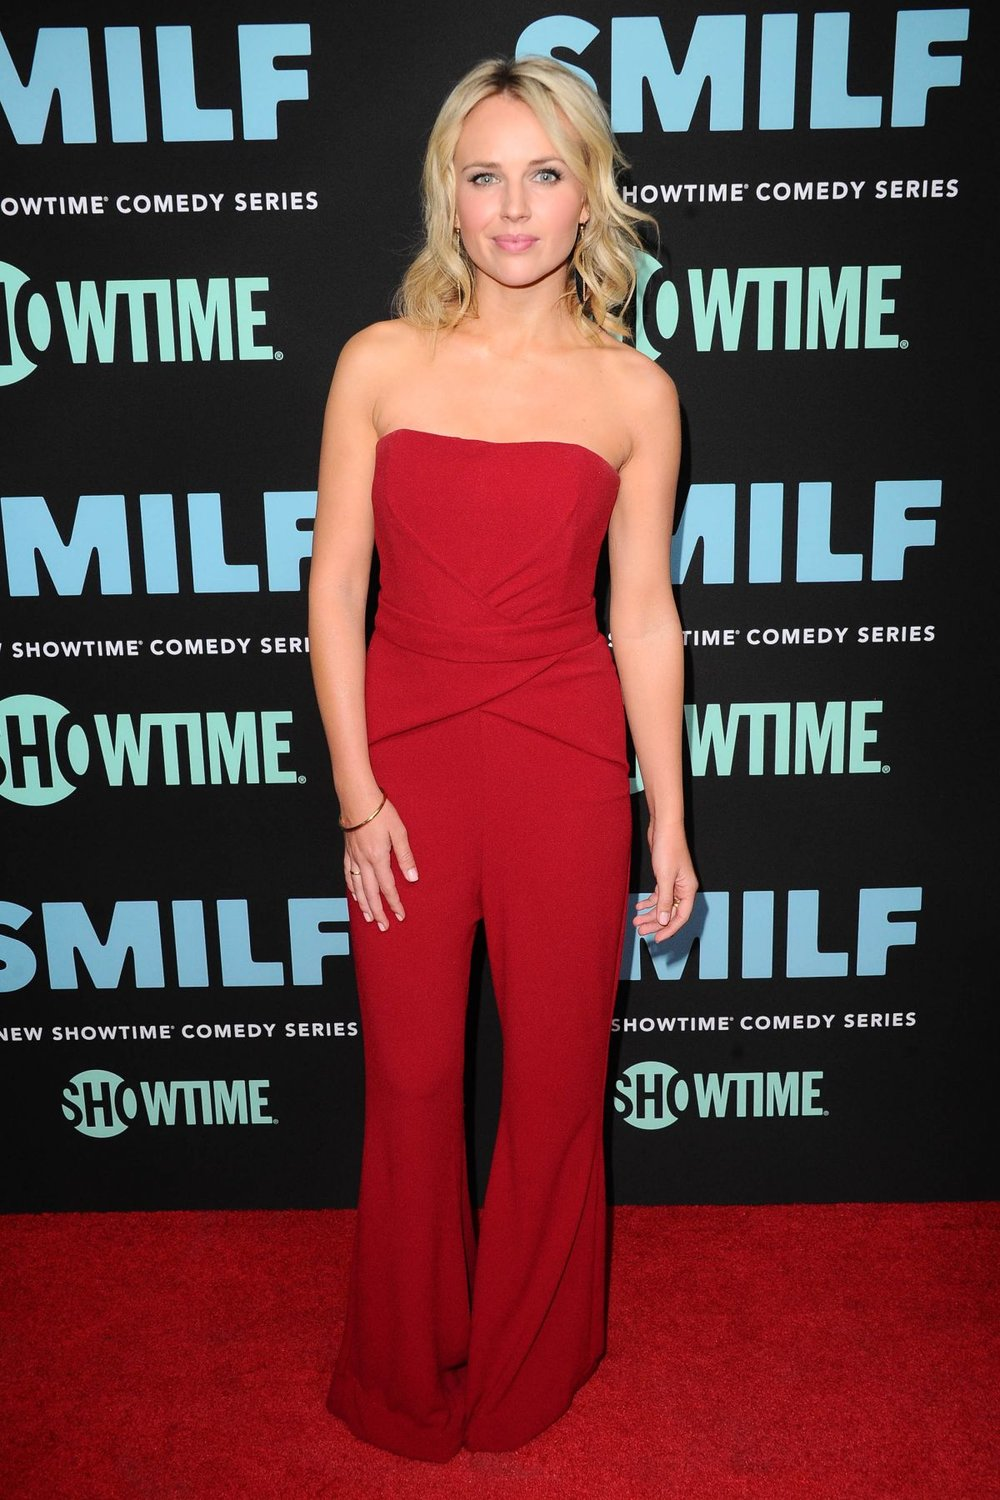 kim-crossman-at-smilf-premiere-in-los-angeles-10-09-2017-2.jpg